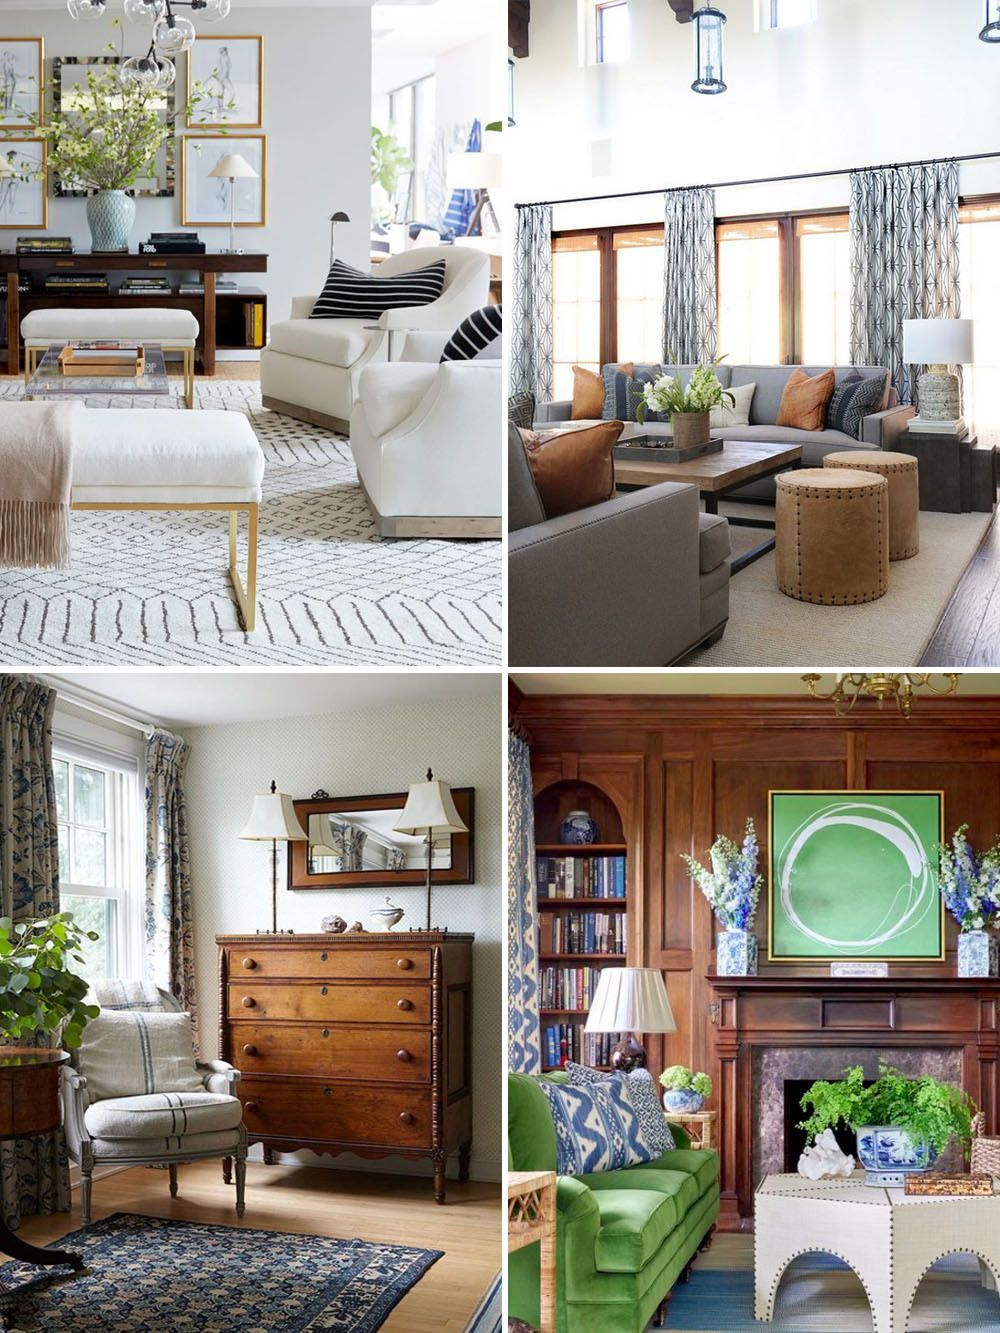 Different house decor styles home decorating ideas for Different design styles home decor